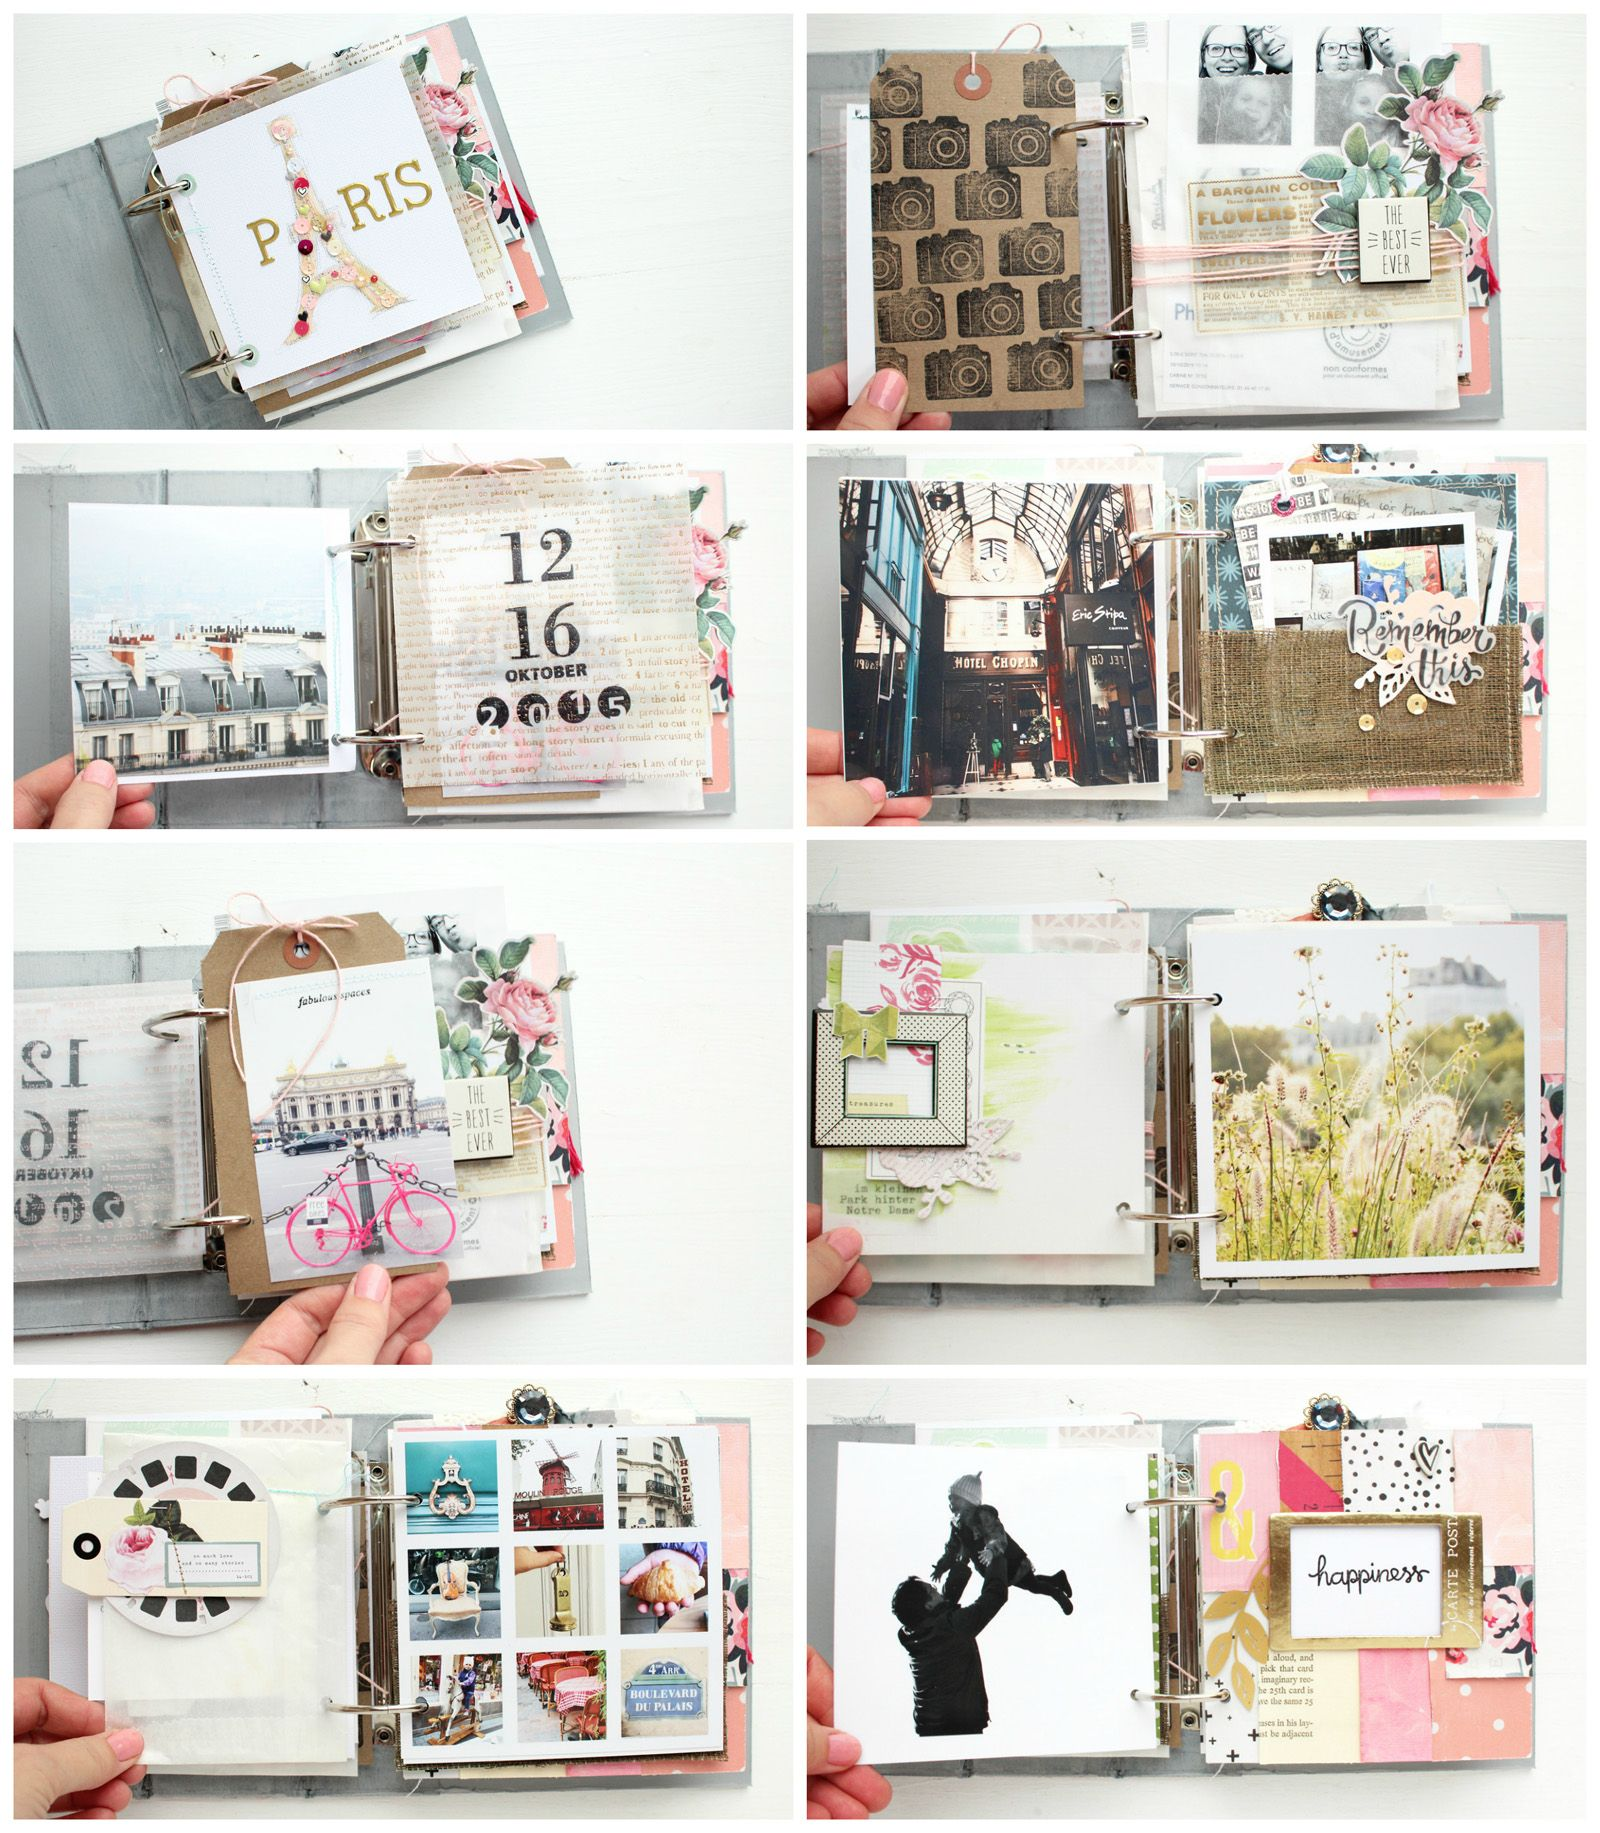 Album Gestalten Mini Album Quotparis Quot Details 1 Steffi Ried Scrapbooking